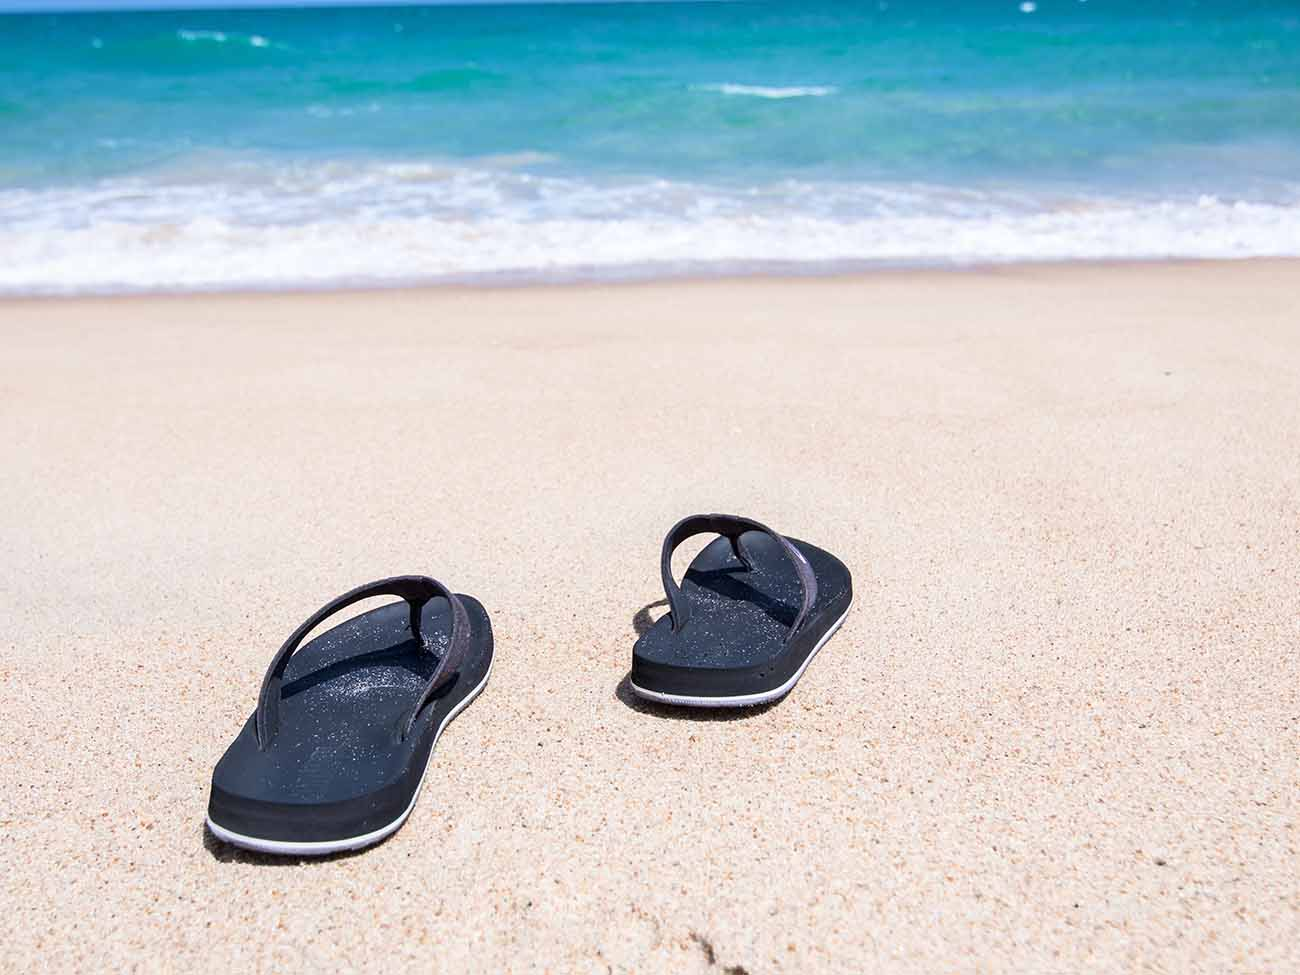 Don't forget your flip flops when leaving Patong Beach, Phuket!